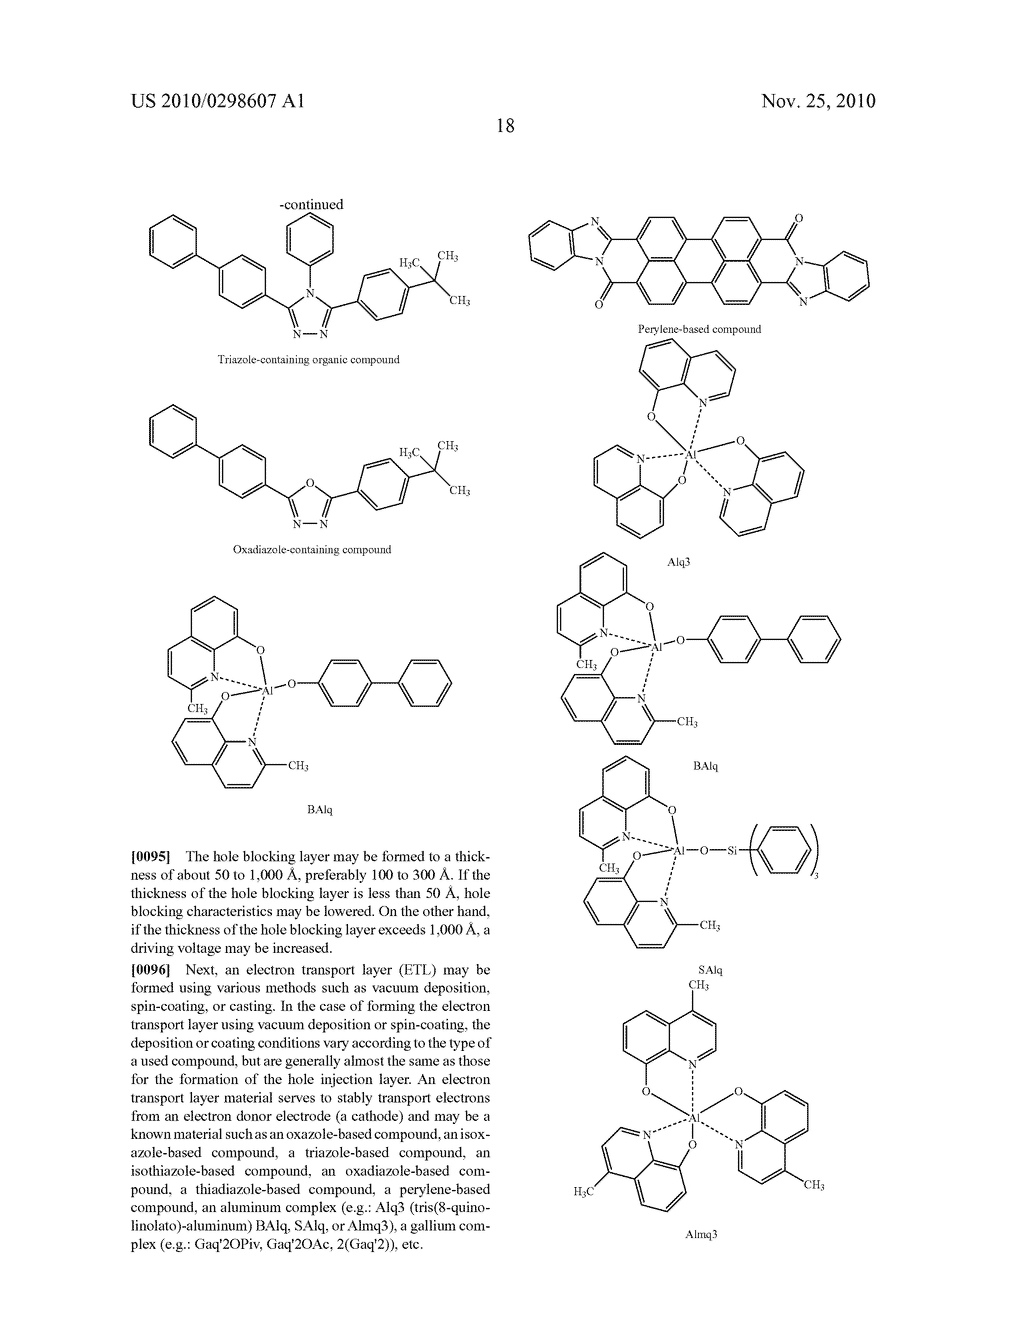 CYCLOPENTAPHENANTHRENE-BASED COMPOUND AND ORGANIC ELECTROLUMINESCENT DEVICE USING THE SAME - diagram, schematic, and image 22